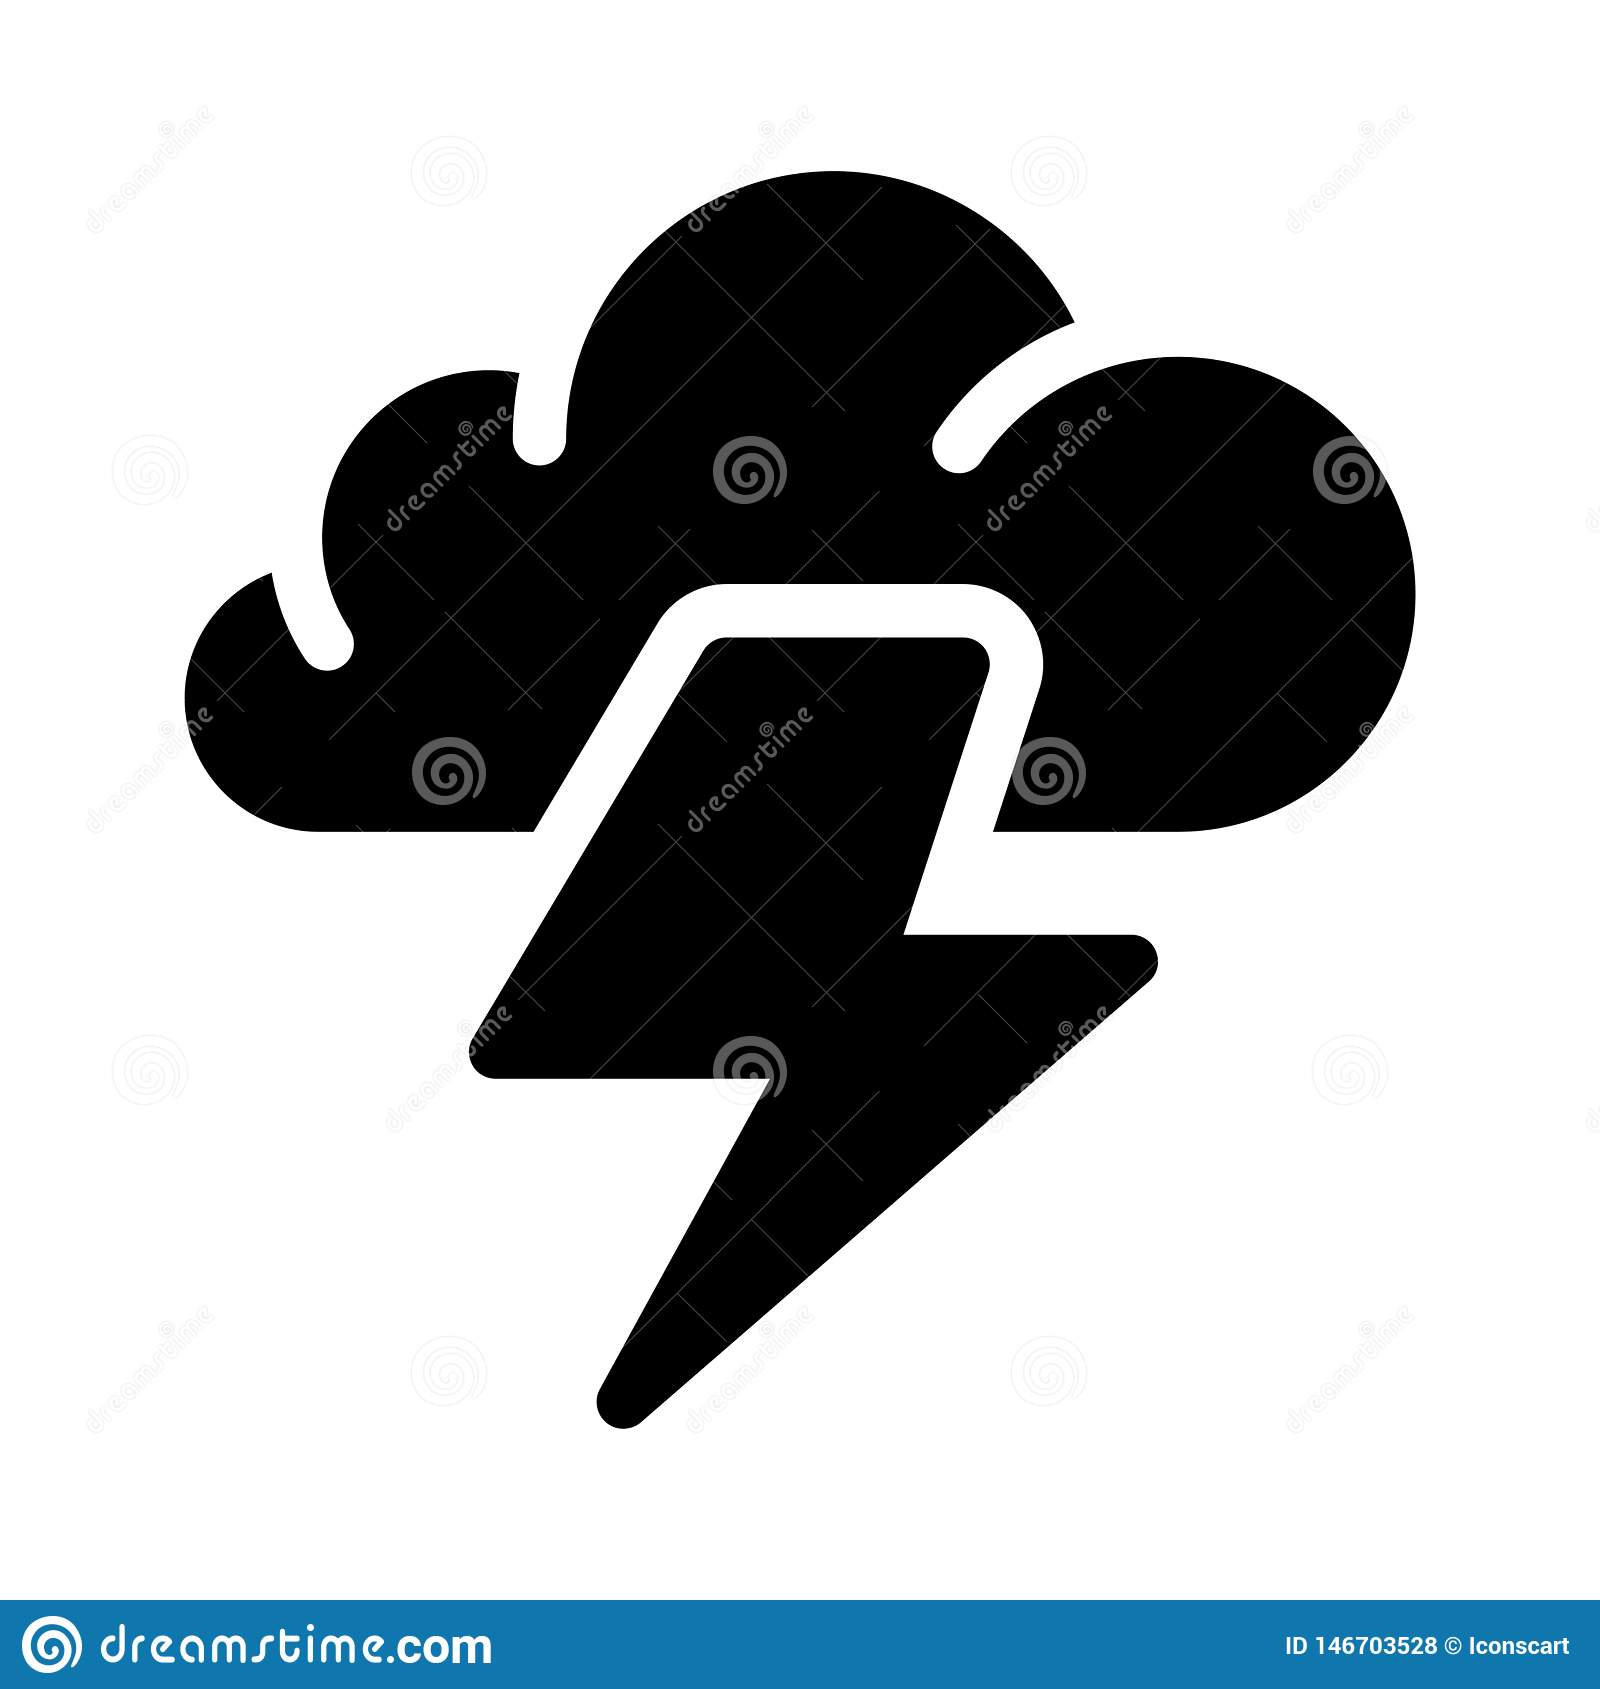 thunder glyph flat vector icon stock vector illustration of lightning clouds 146703528 dreamstime com